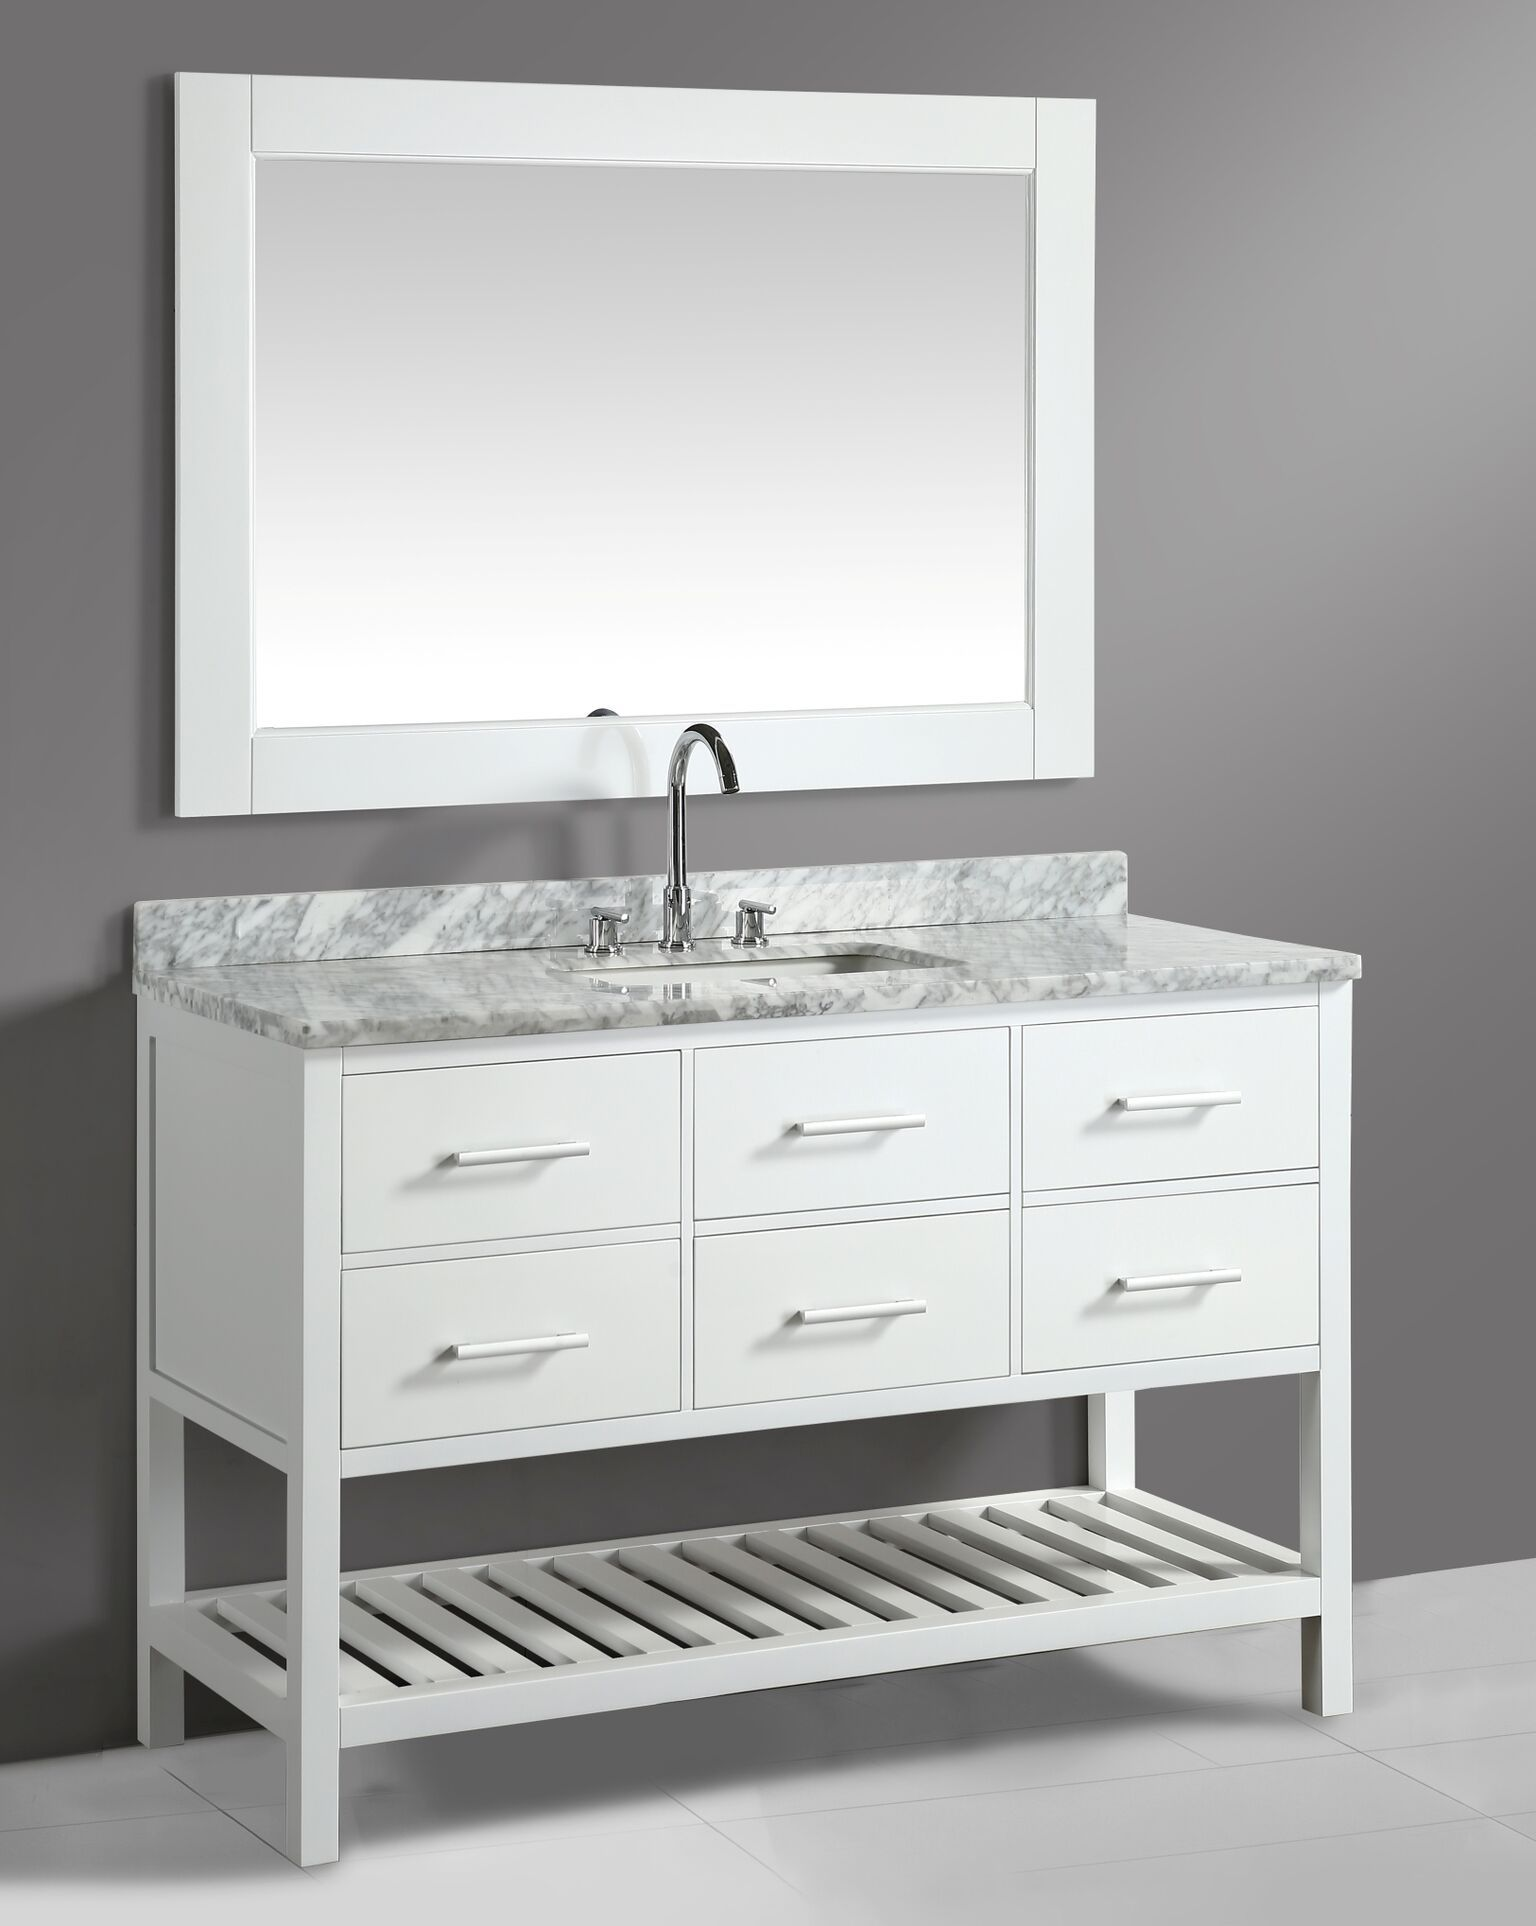 54 Inch Transitional Single Bathroom Vanity Set White Finish With